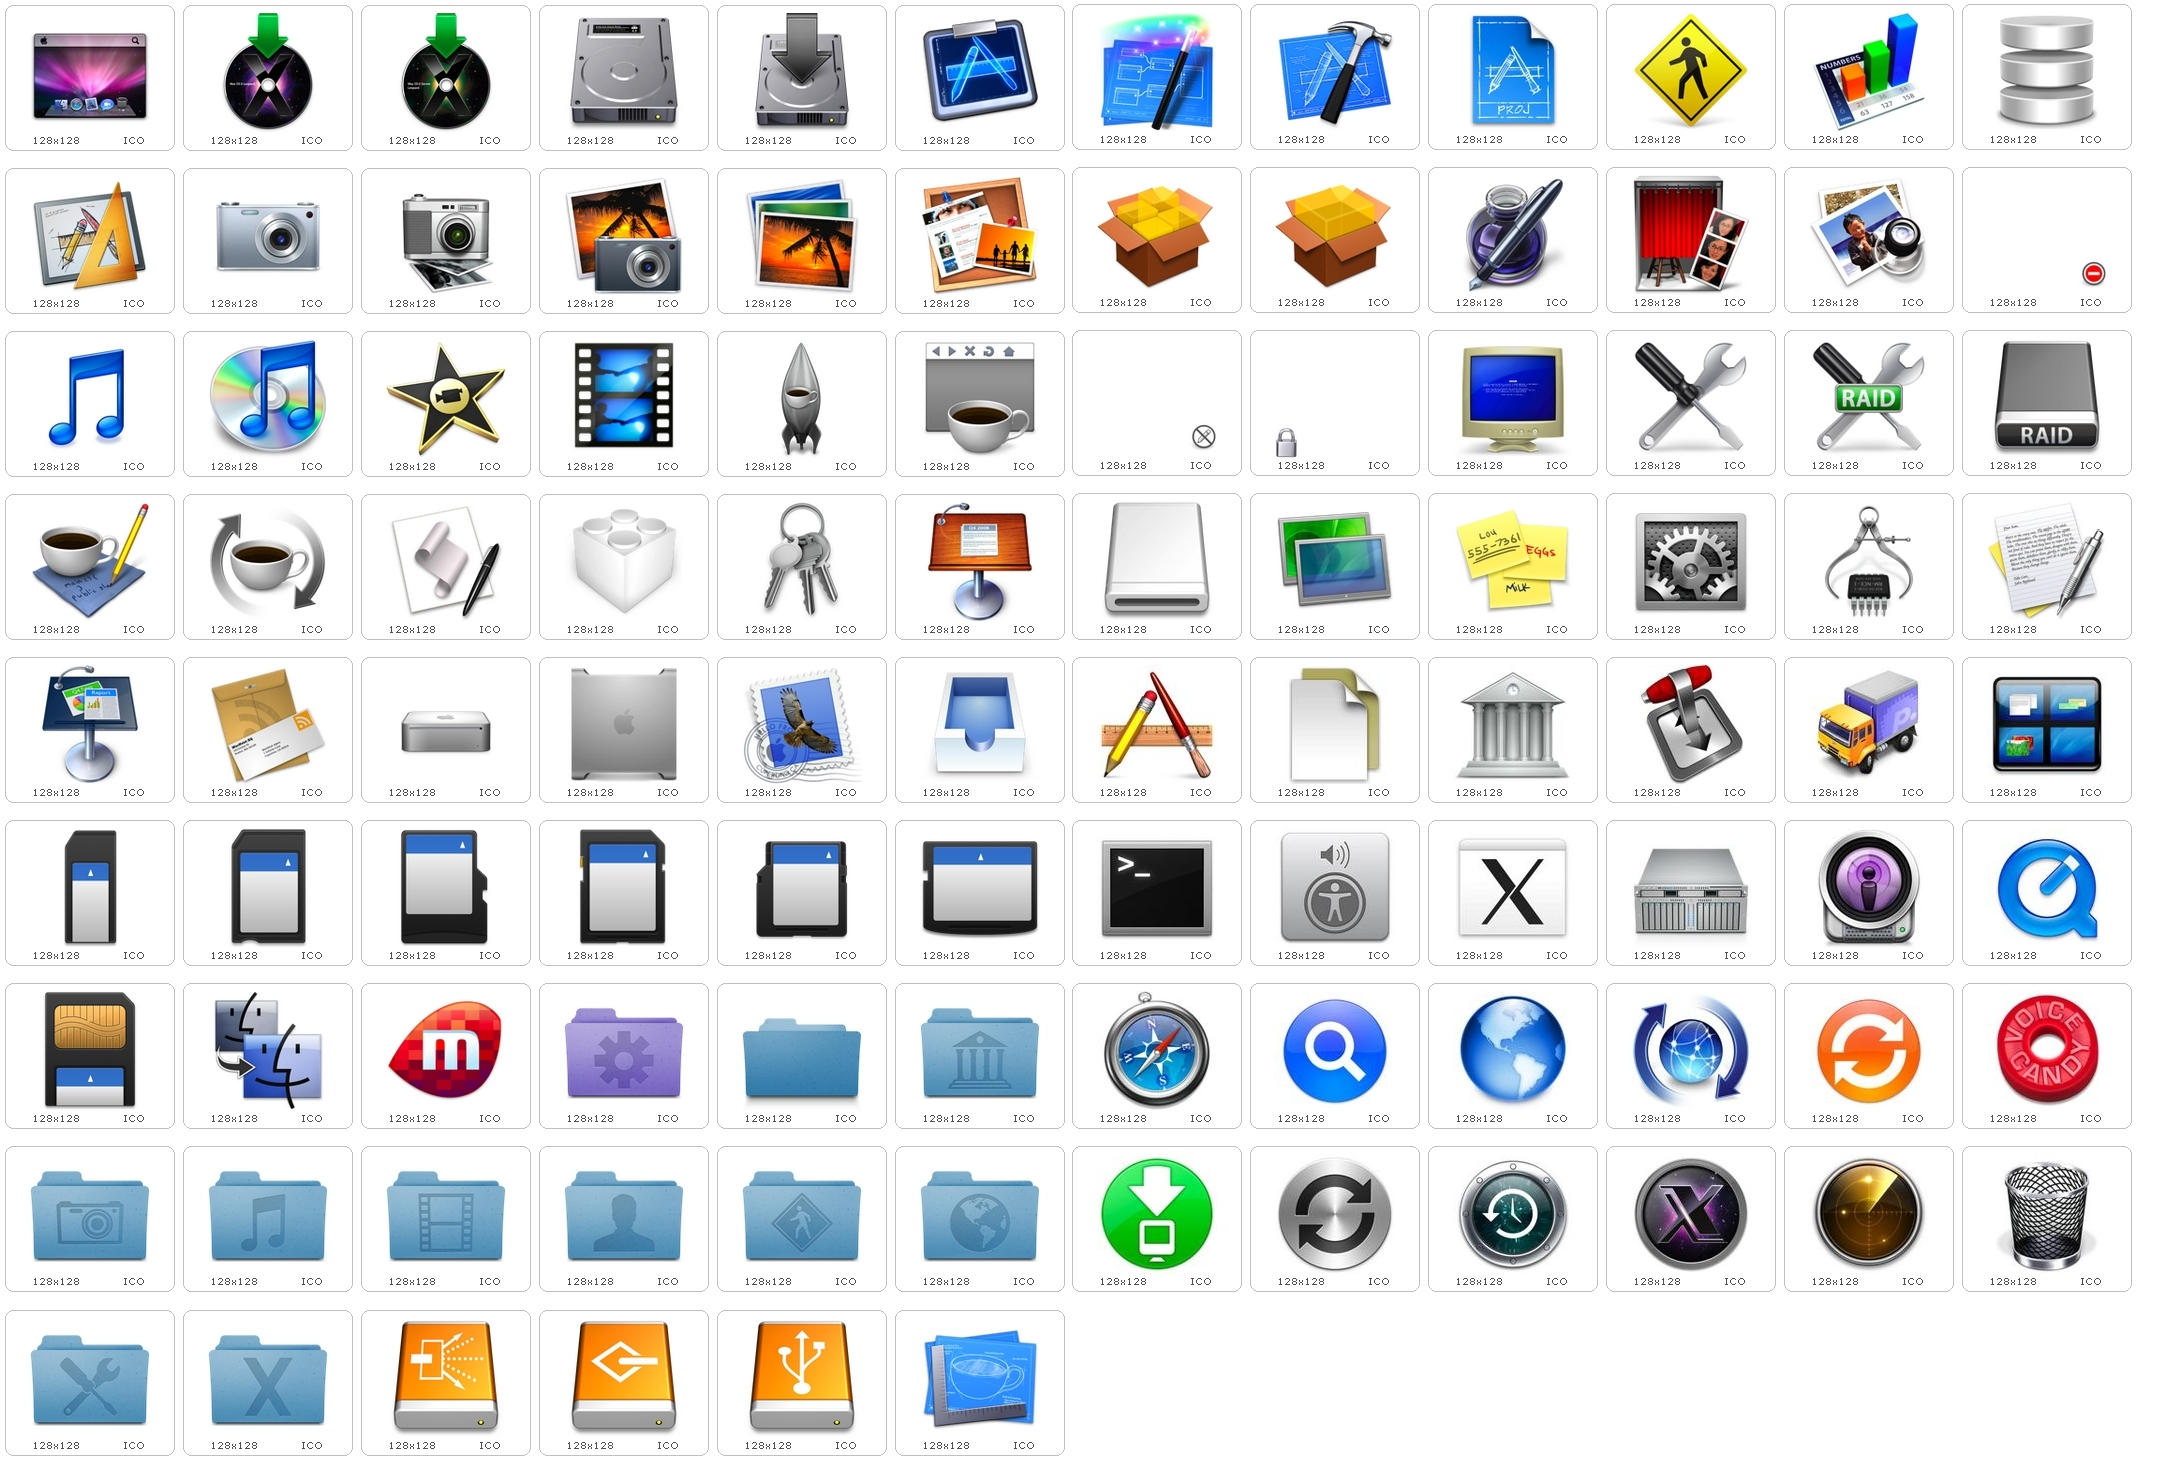 Leopard default system icons 1 by hjsergey on deviantart - Apple icon x ...